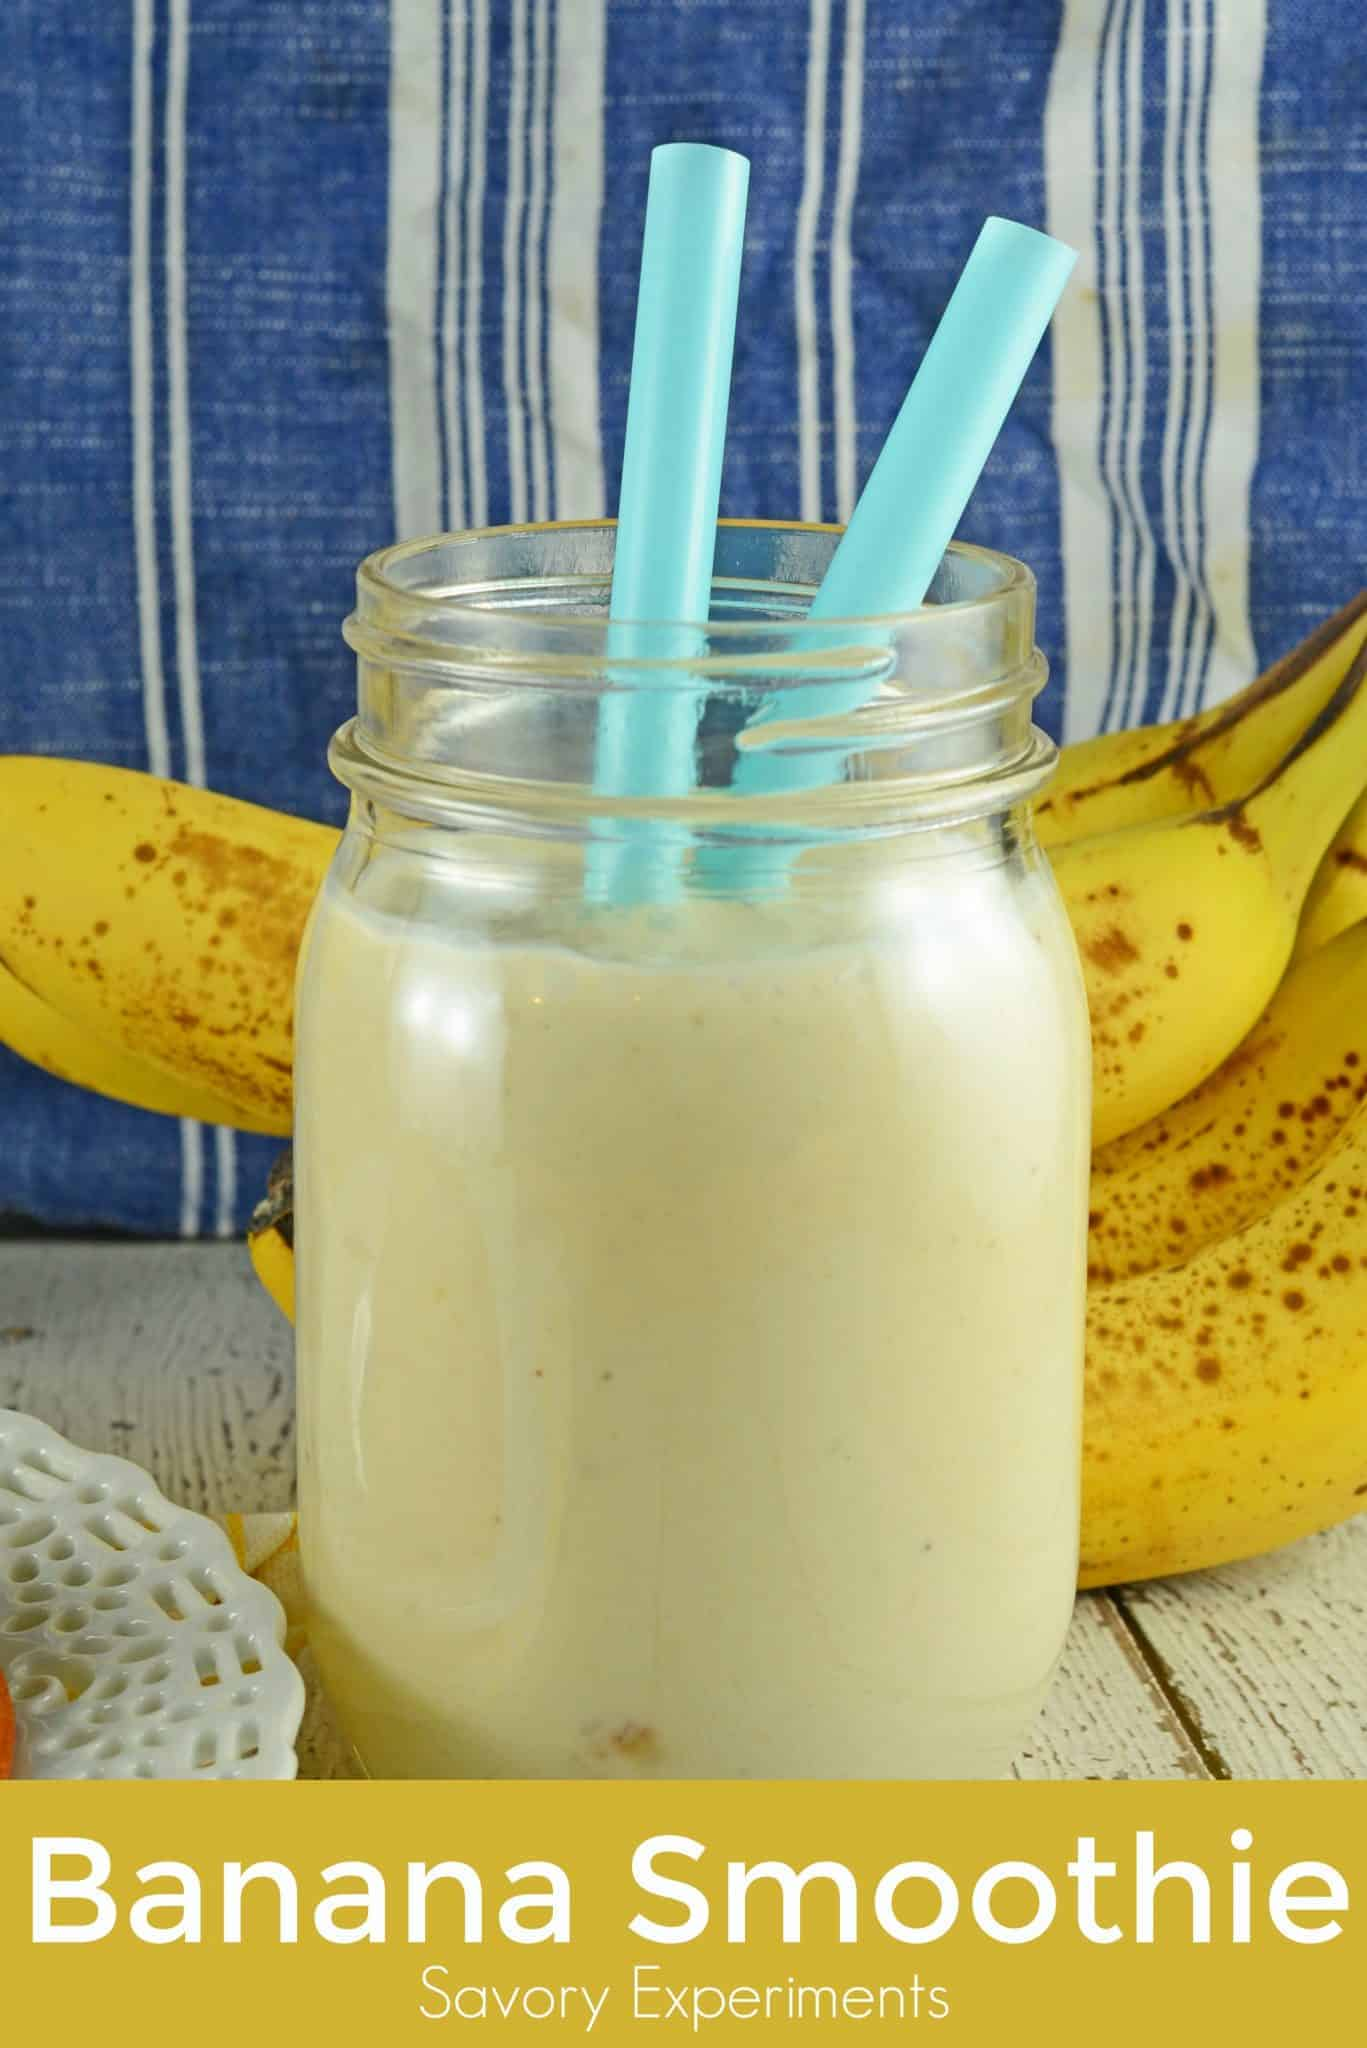 Add protein powder, peanut butter, chocolate, pineapple, strawberries or other delicious fruit to make yourself a custom Banana Smoothie! You can also switch up the yogurt flavor or go plain.